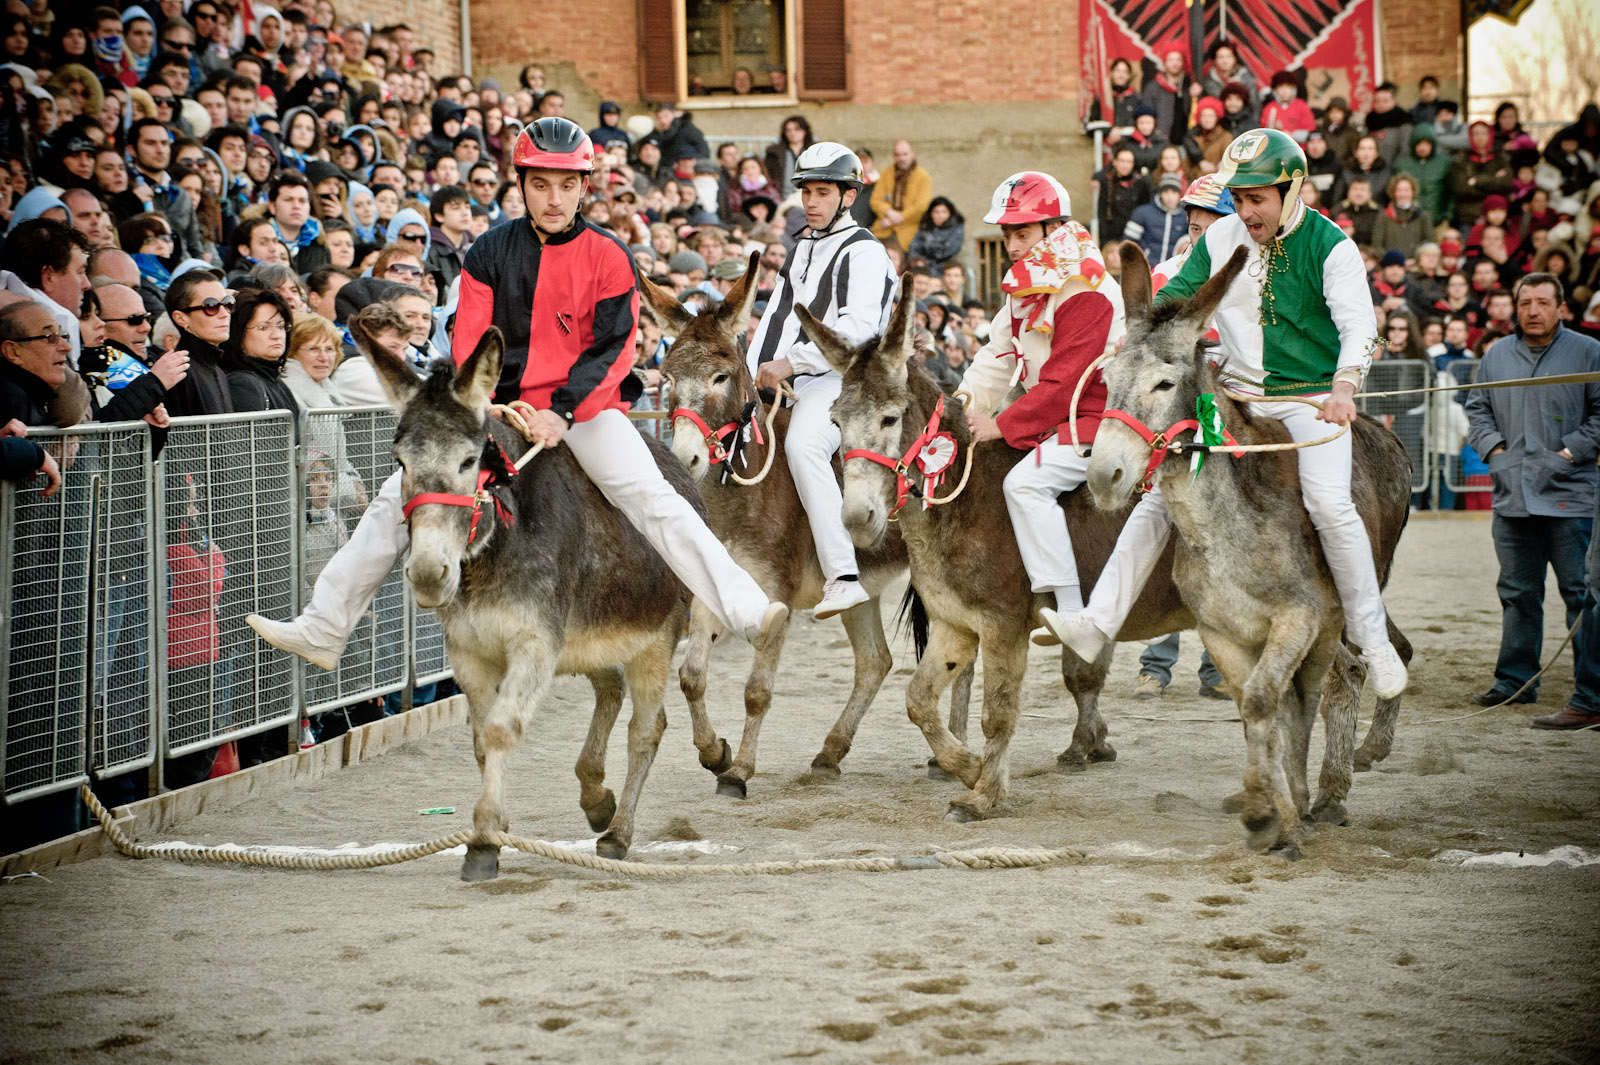 Originally conceived for paying tribute to Saint Joseph - patron of woodworkers - the Palio celebrations start on the 14th of March with the taverne - inns - openings and continue throughout the following week with propitiatory dinners held in the various contrade (village quarters) participating in the competition - the donkeys race -  held on March 22. On the same day, there will also be a parade with people dressed up in historical costumes, flag throwers and drummers.